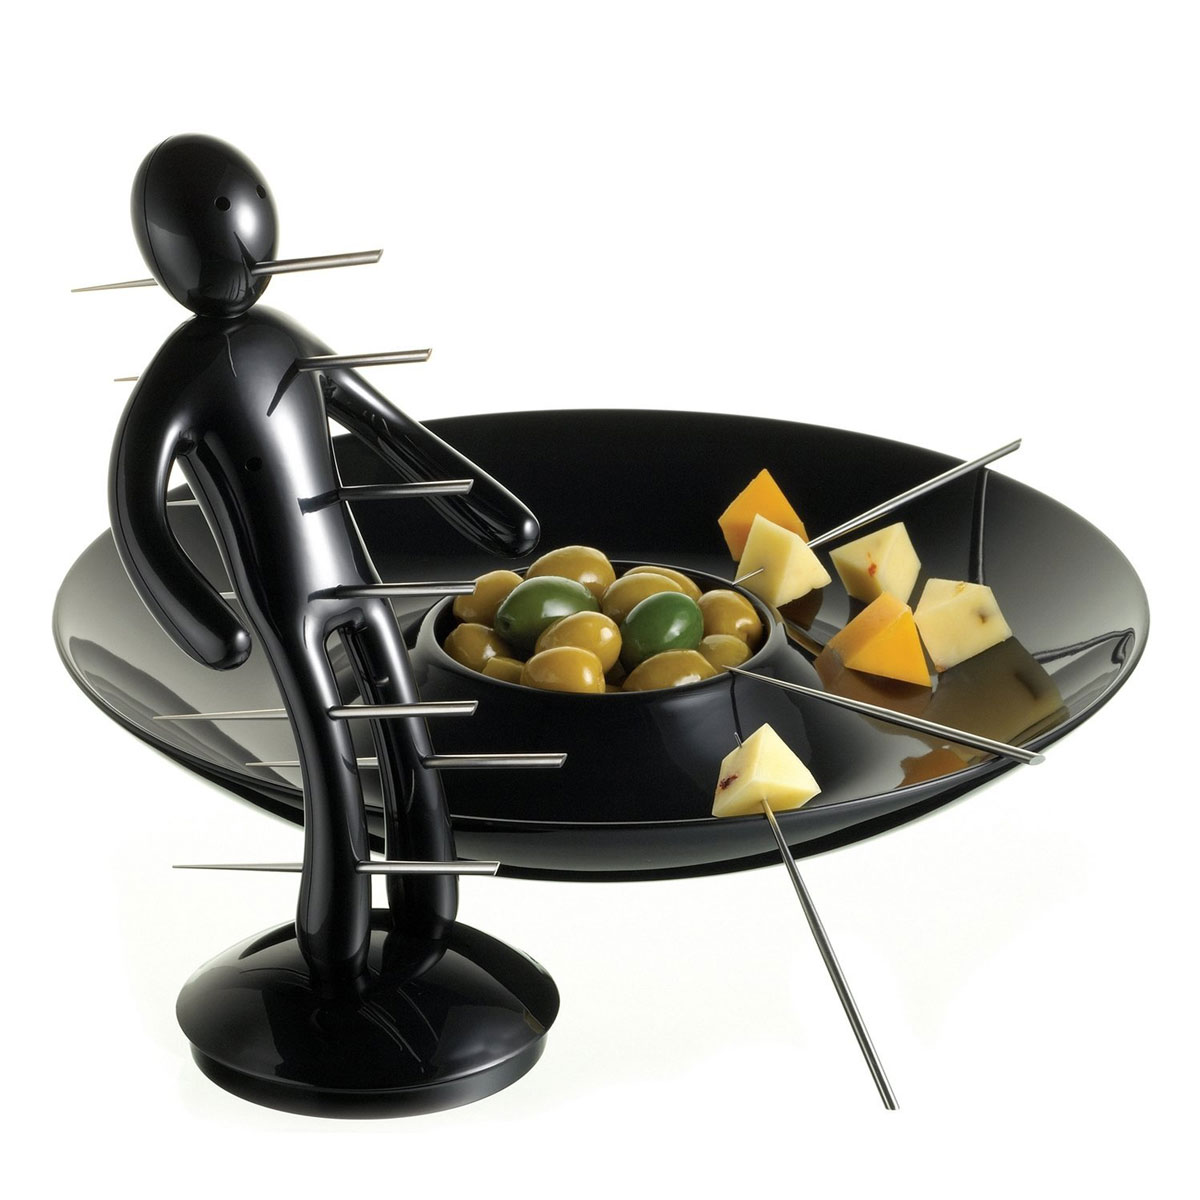 Ex-skewer-set-voodoo-appetizer-serving-tray-2